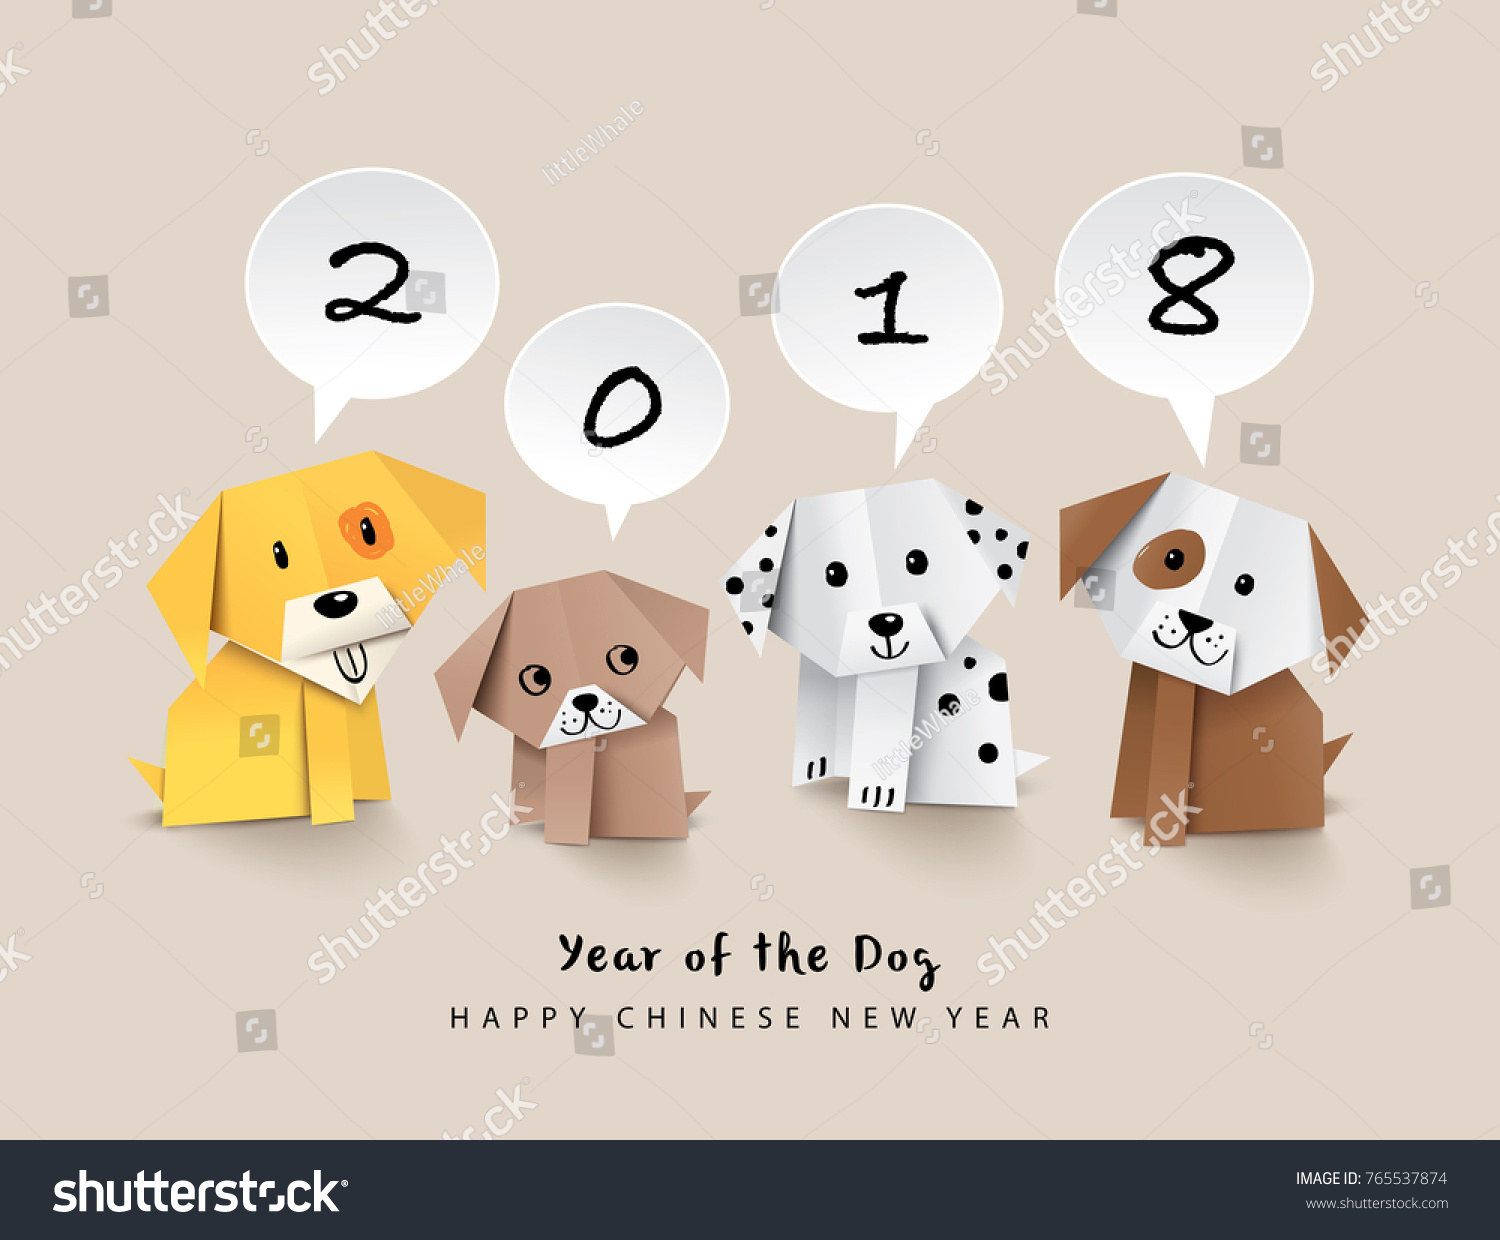 2018 chinese new year greeting card stock vector 765537874 2018 chinese new year greeting card design with origami dogs kristyandbryce Images